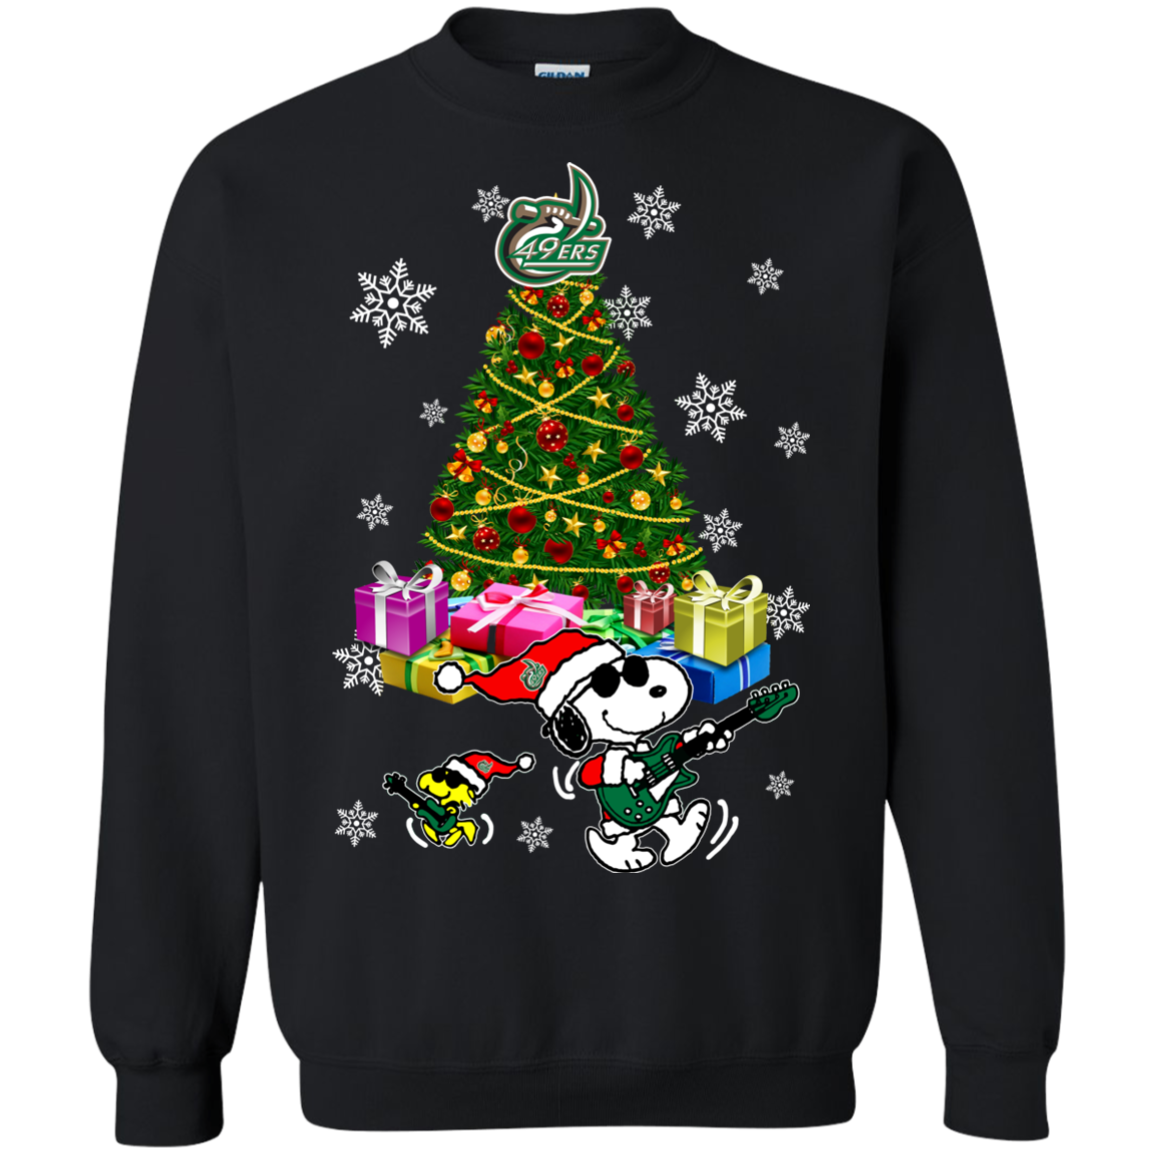 Charlotte 49ers Ugly Christmas Sweaters Merry Christmas Snoopy